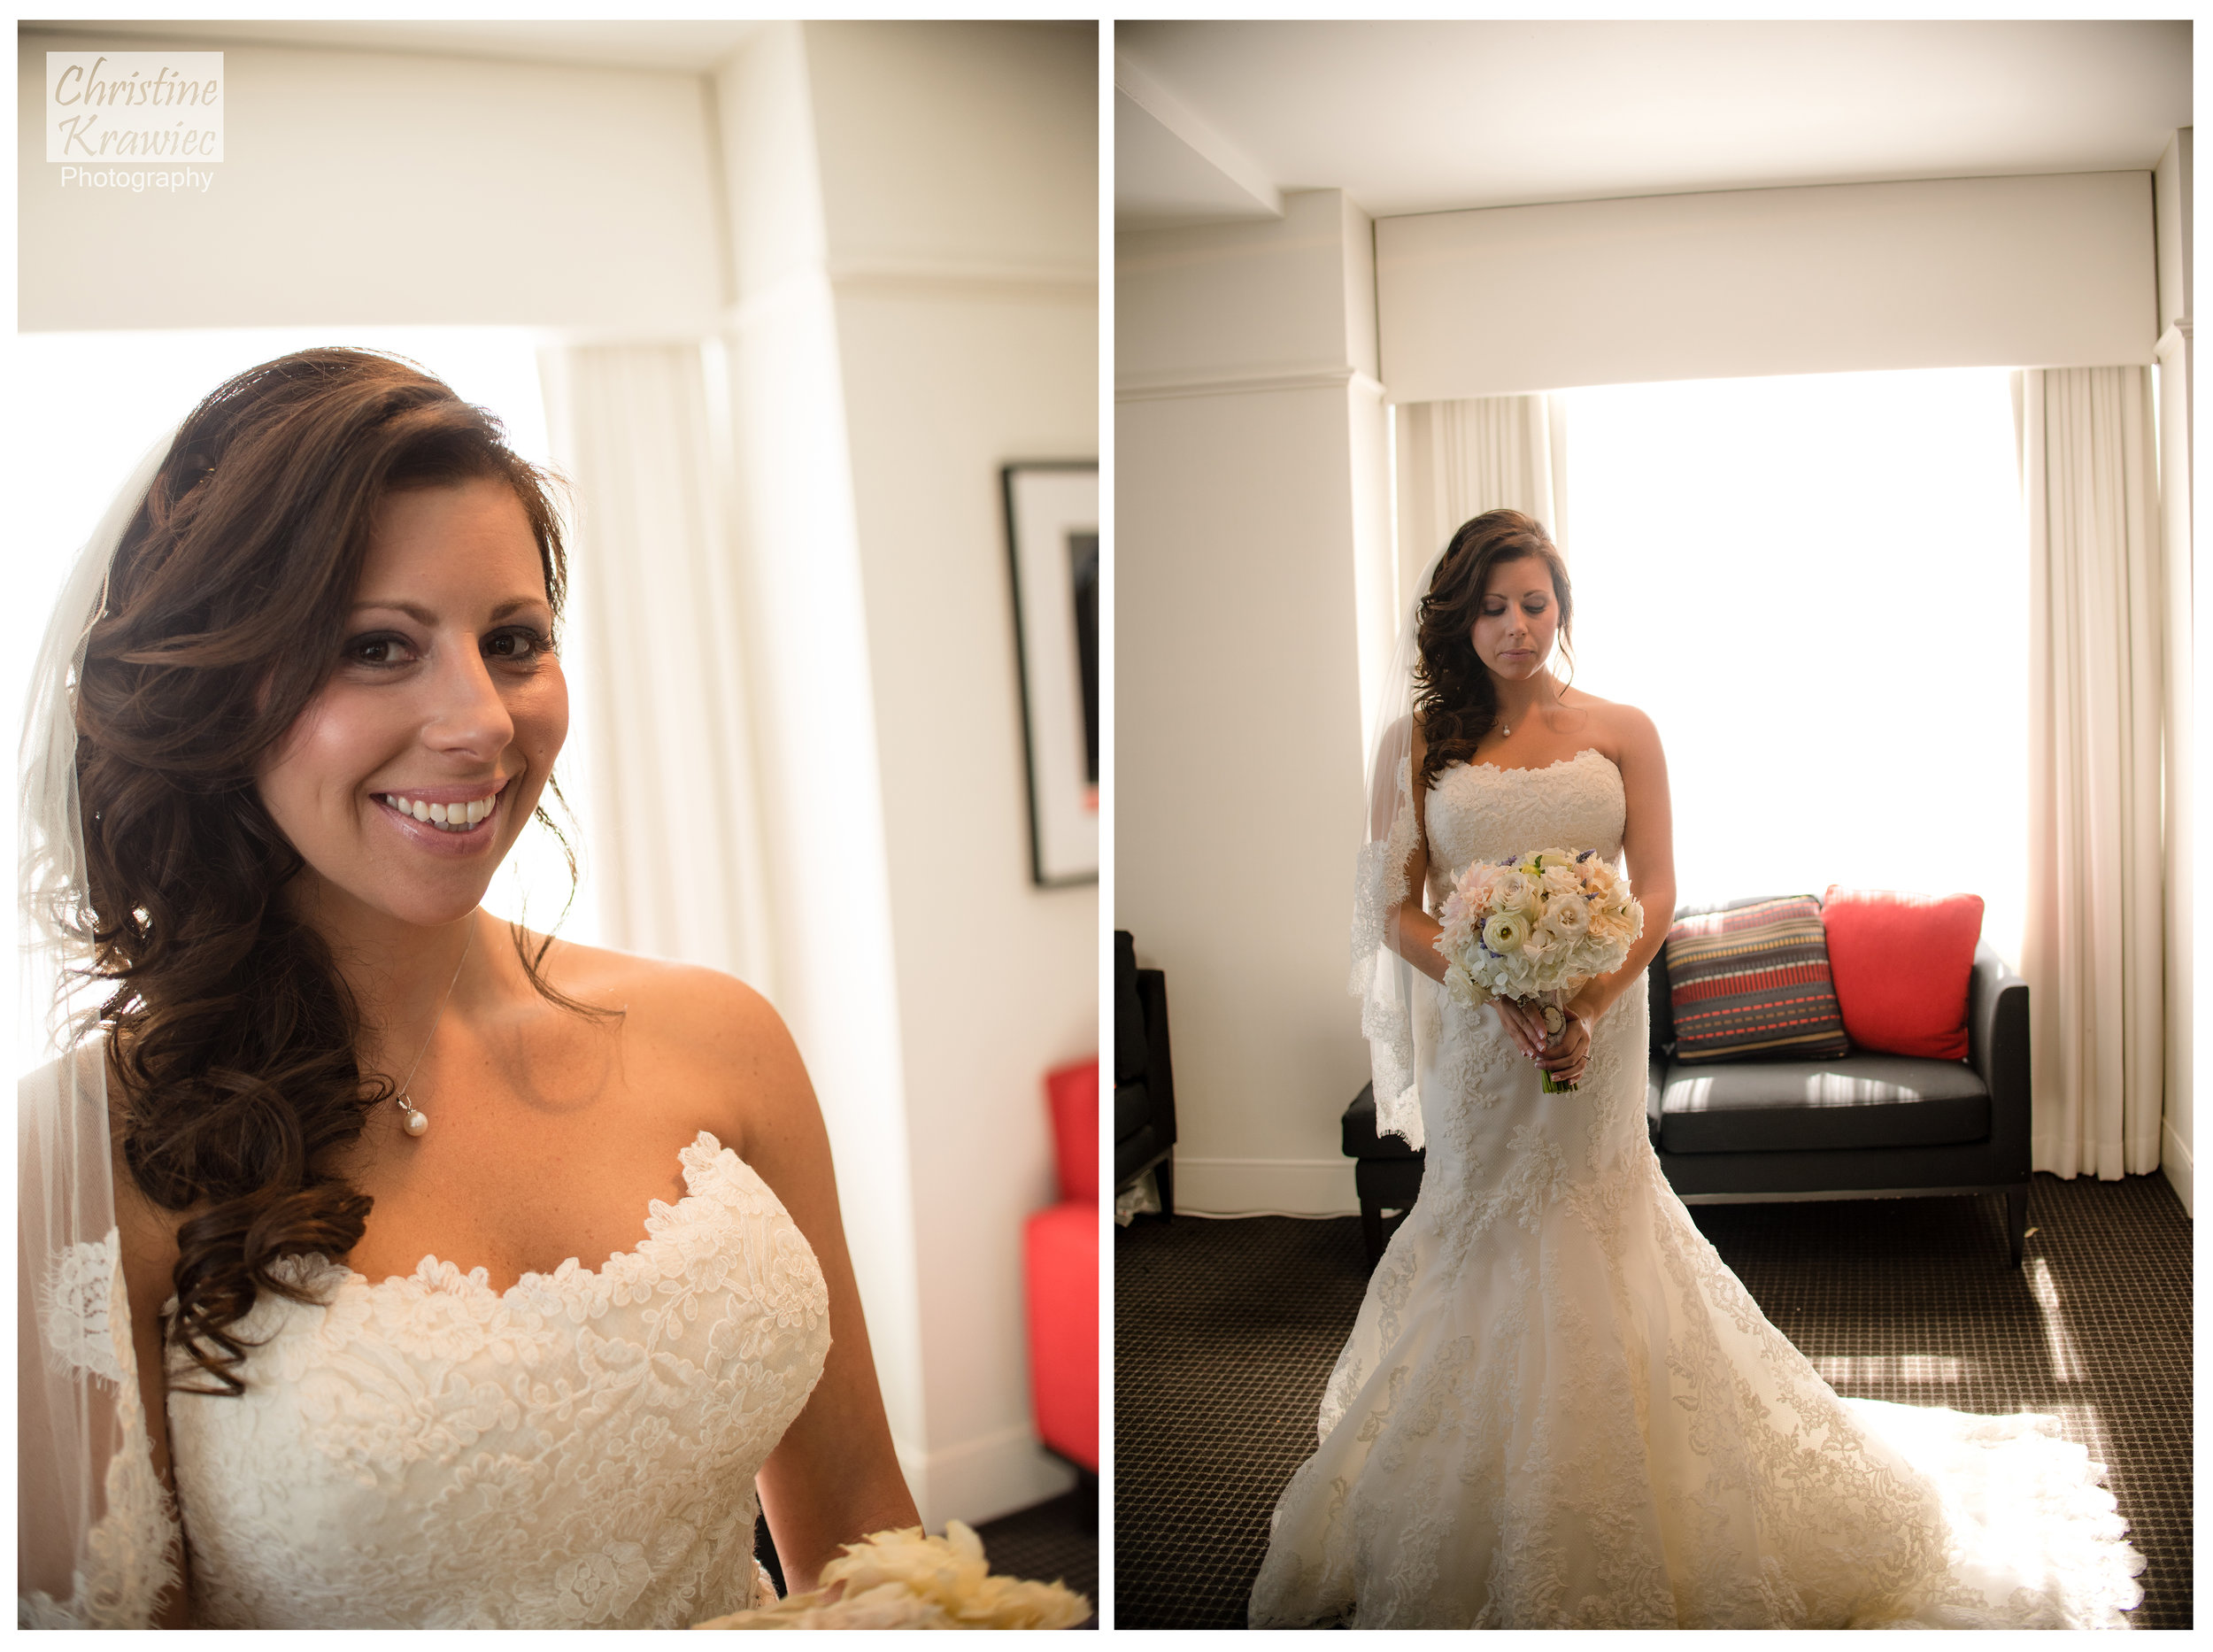 Lauren makes a stunning bride!